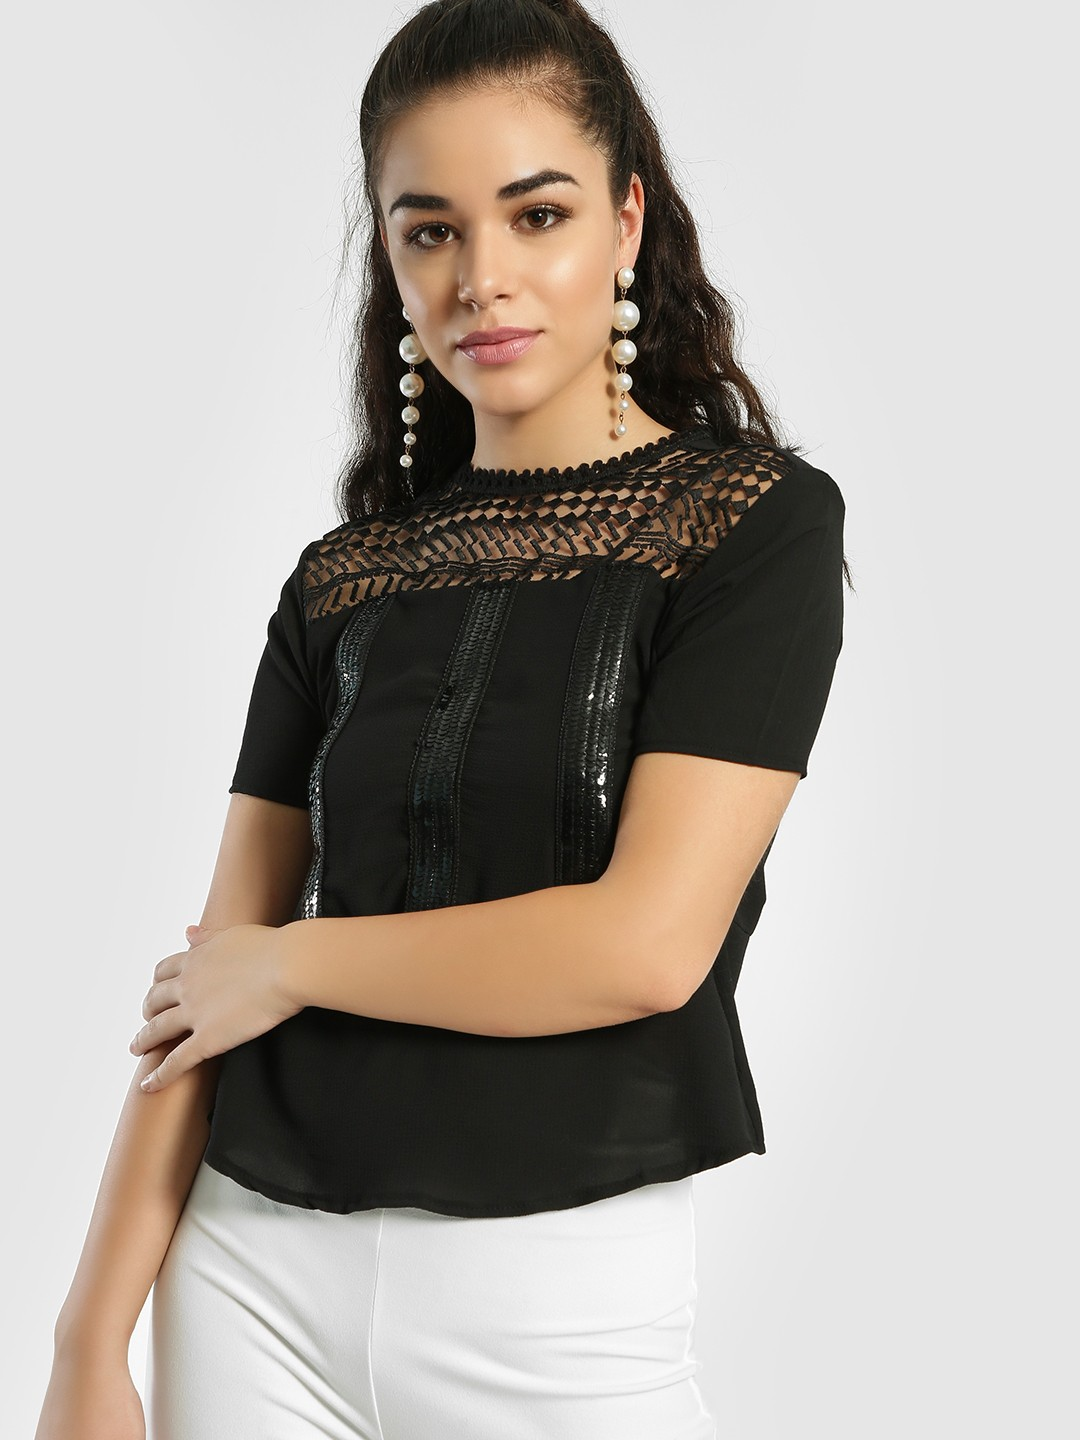 Privy League Black Lace Yoke Sequin Detail Blouse 1